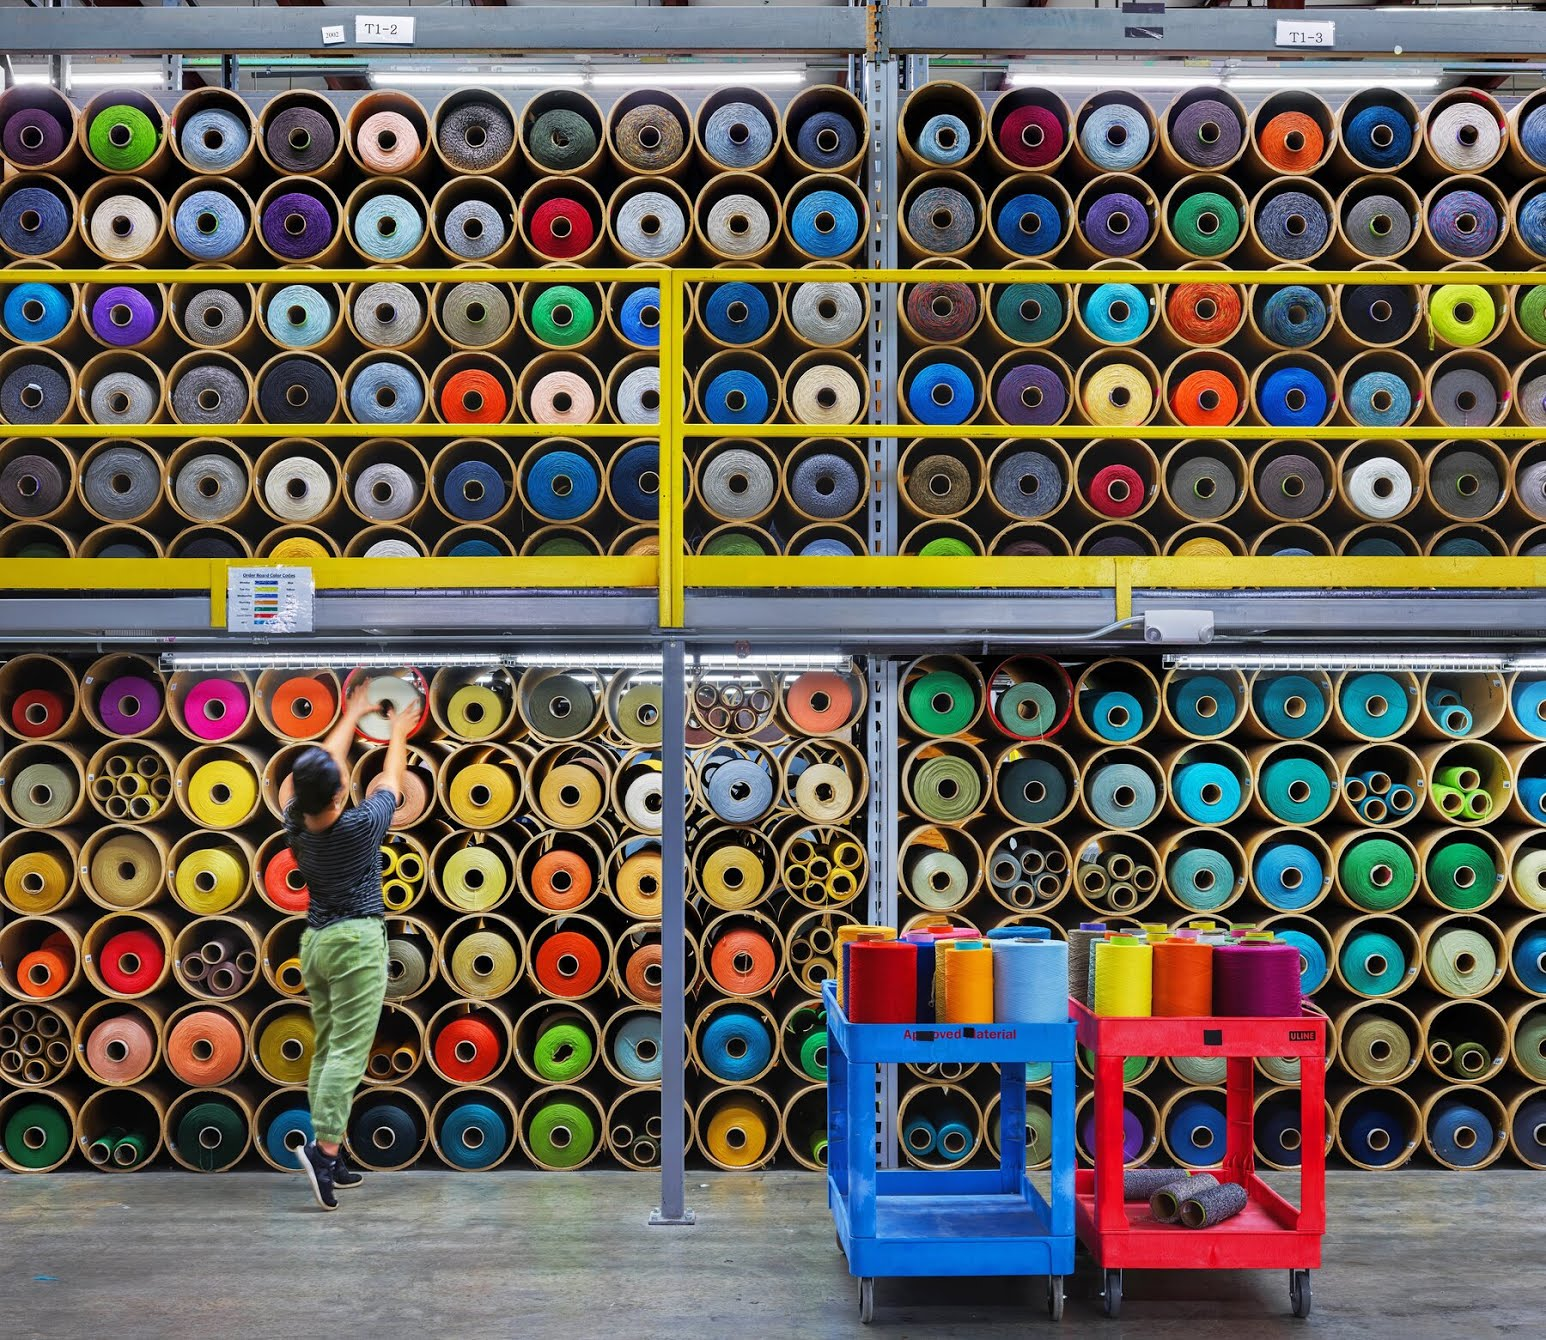 Spools of yarn at Interface. Materials and processing account for a majority of the CO2 emissions associated with making carpet.